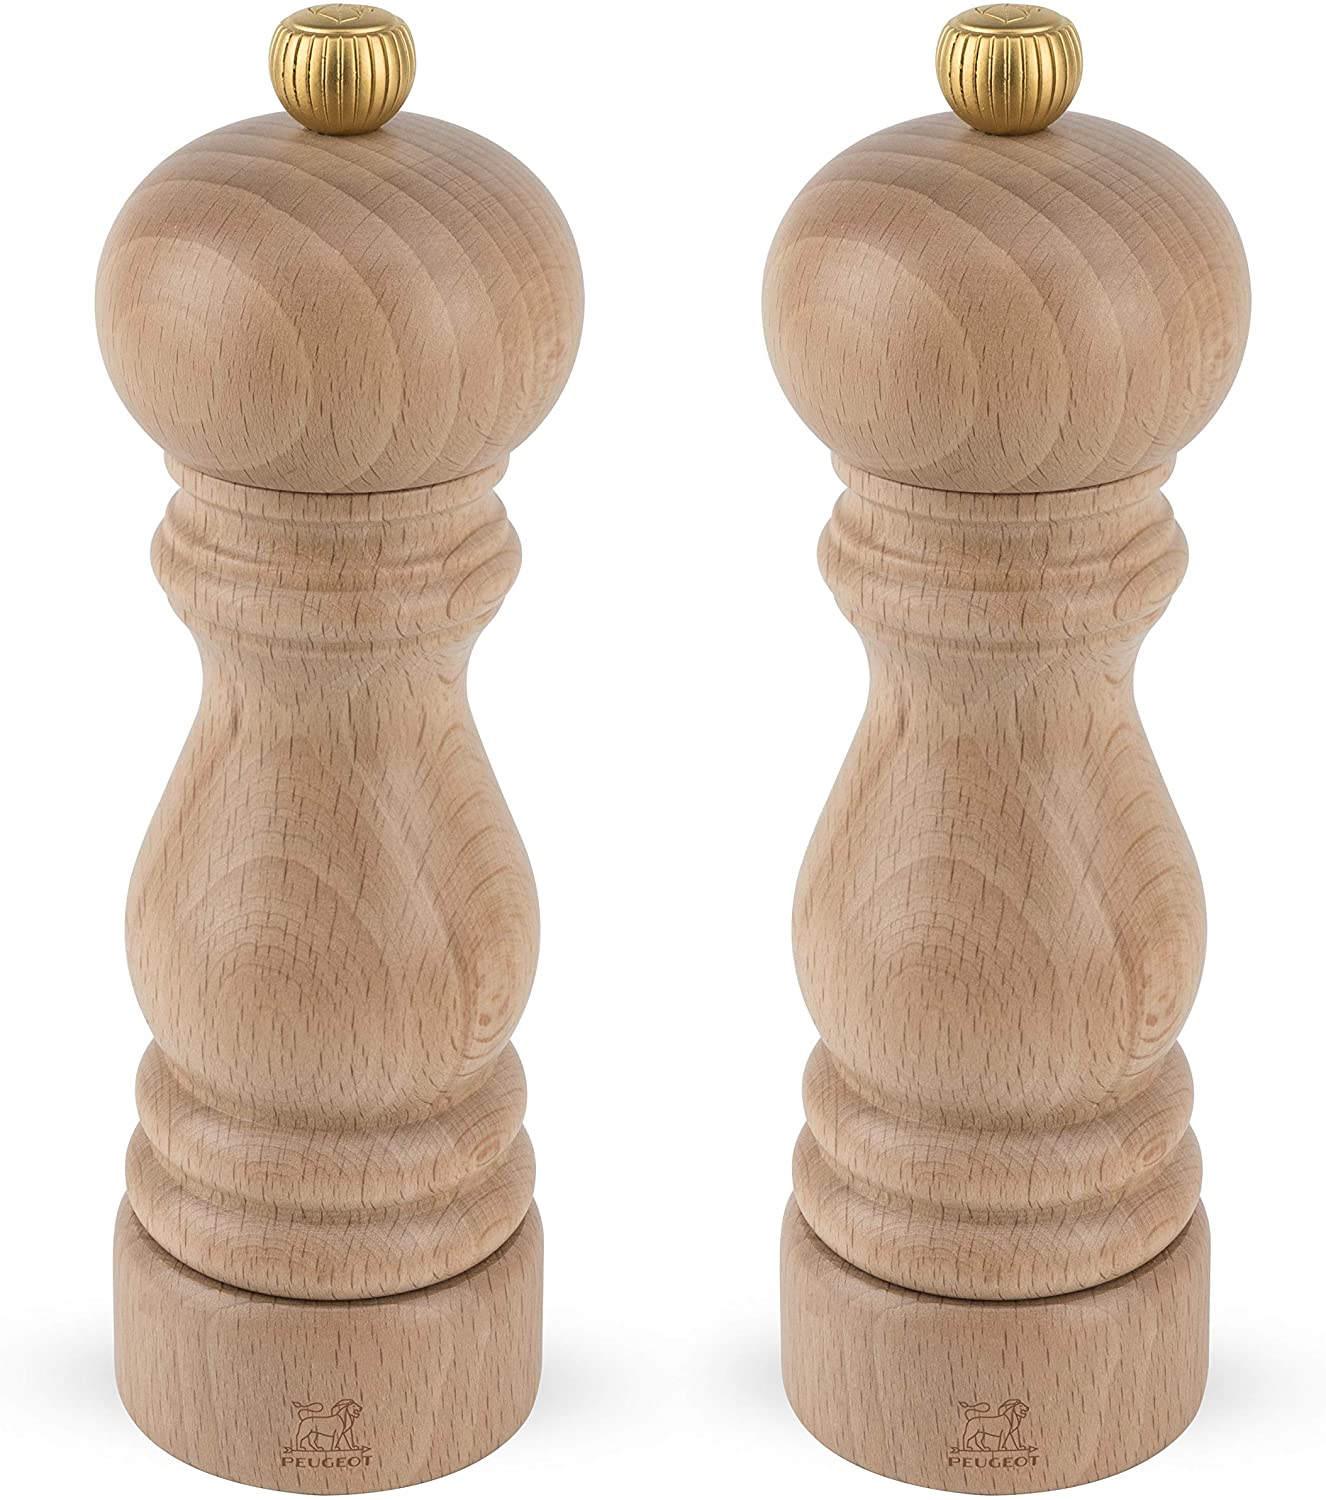 Peugeot Salt Mill & Pepper Mill Duo Set - Paris U-Select Natural Beech 18cm